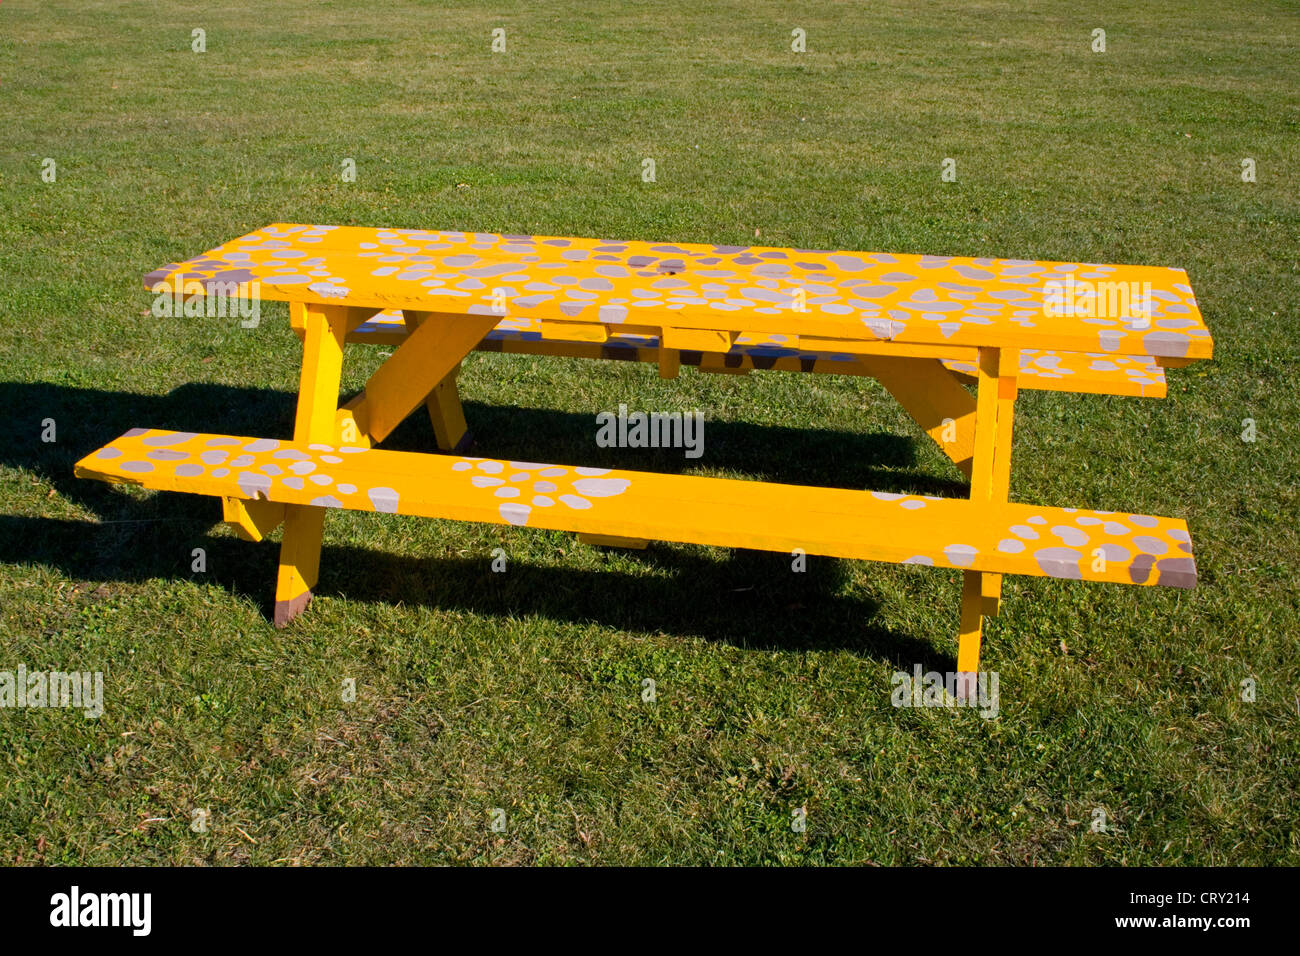 Covered Picnic Tables : Bright yellow picnic table covered with splotches of white